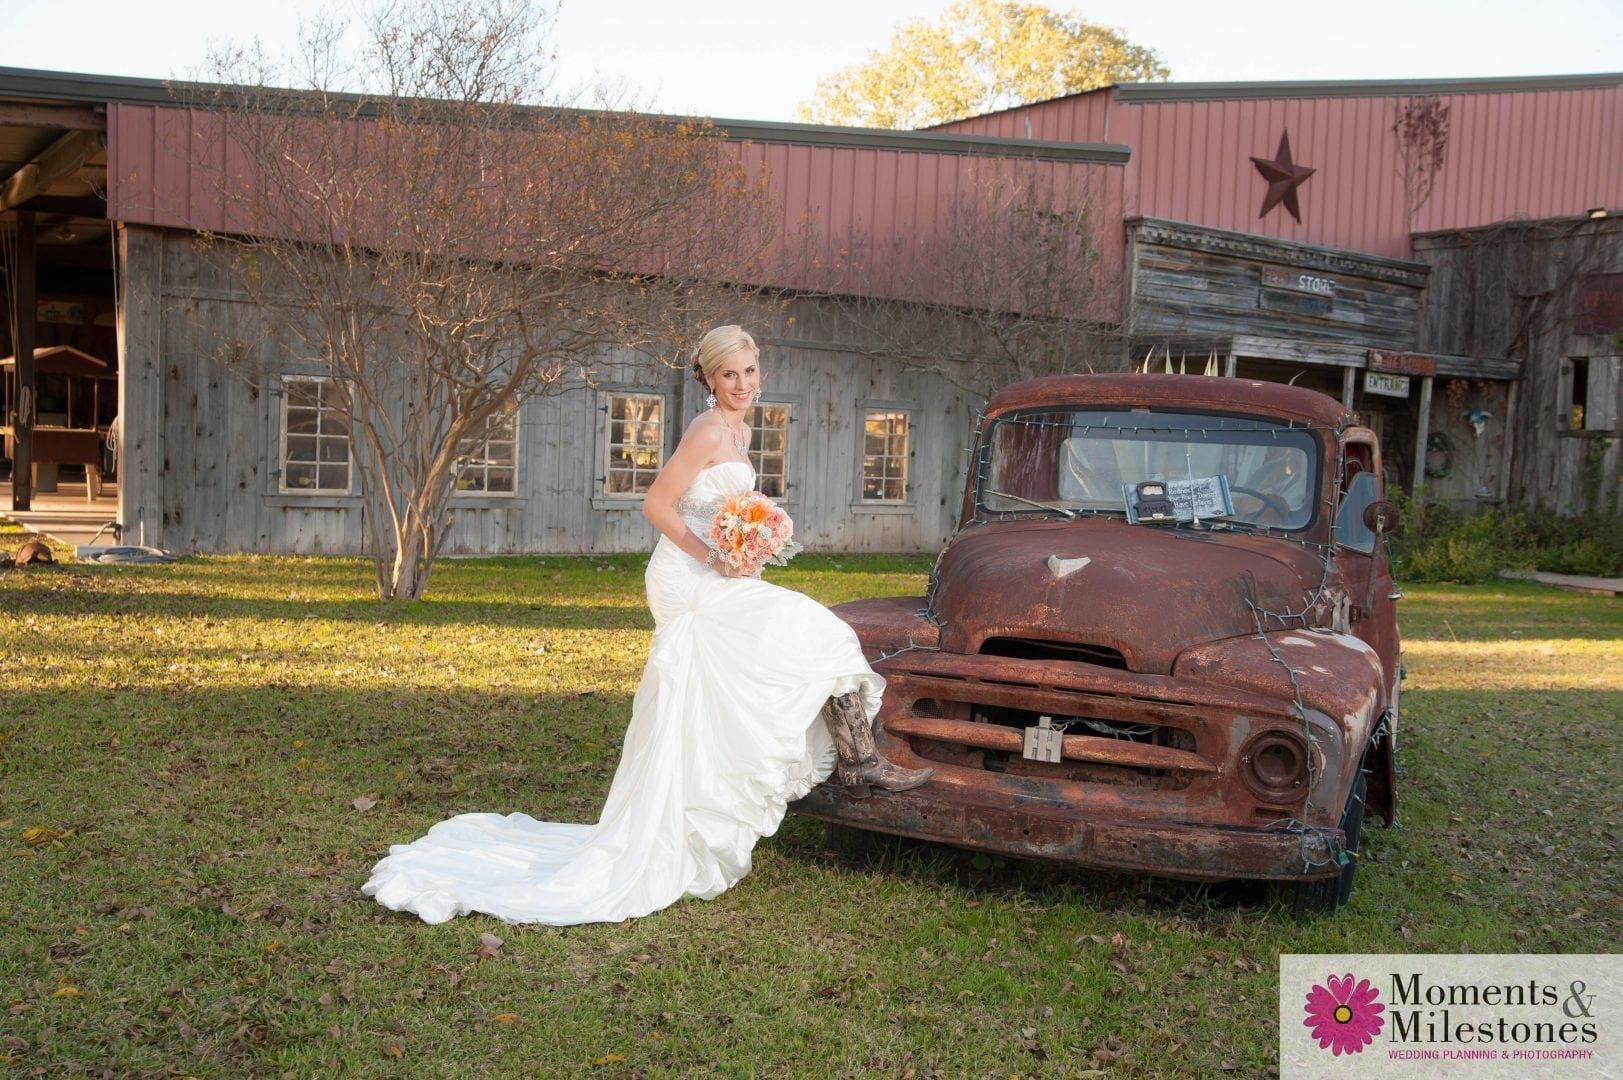 Rio Cibolo Bridal Beauty